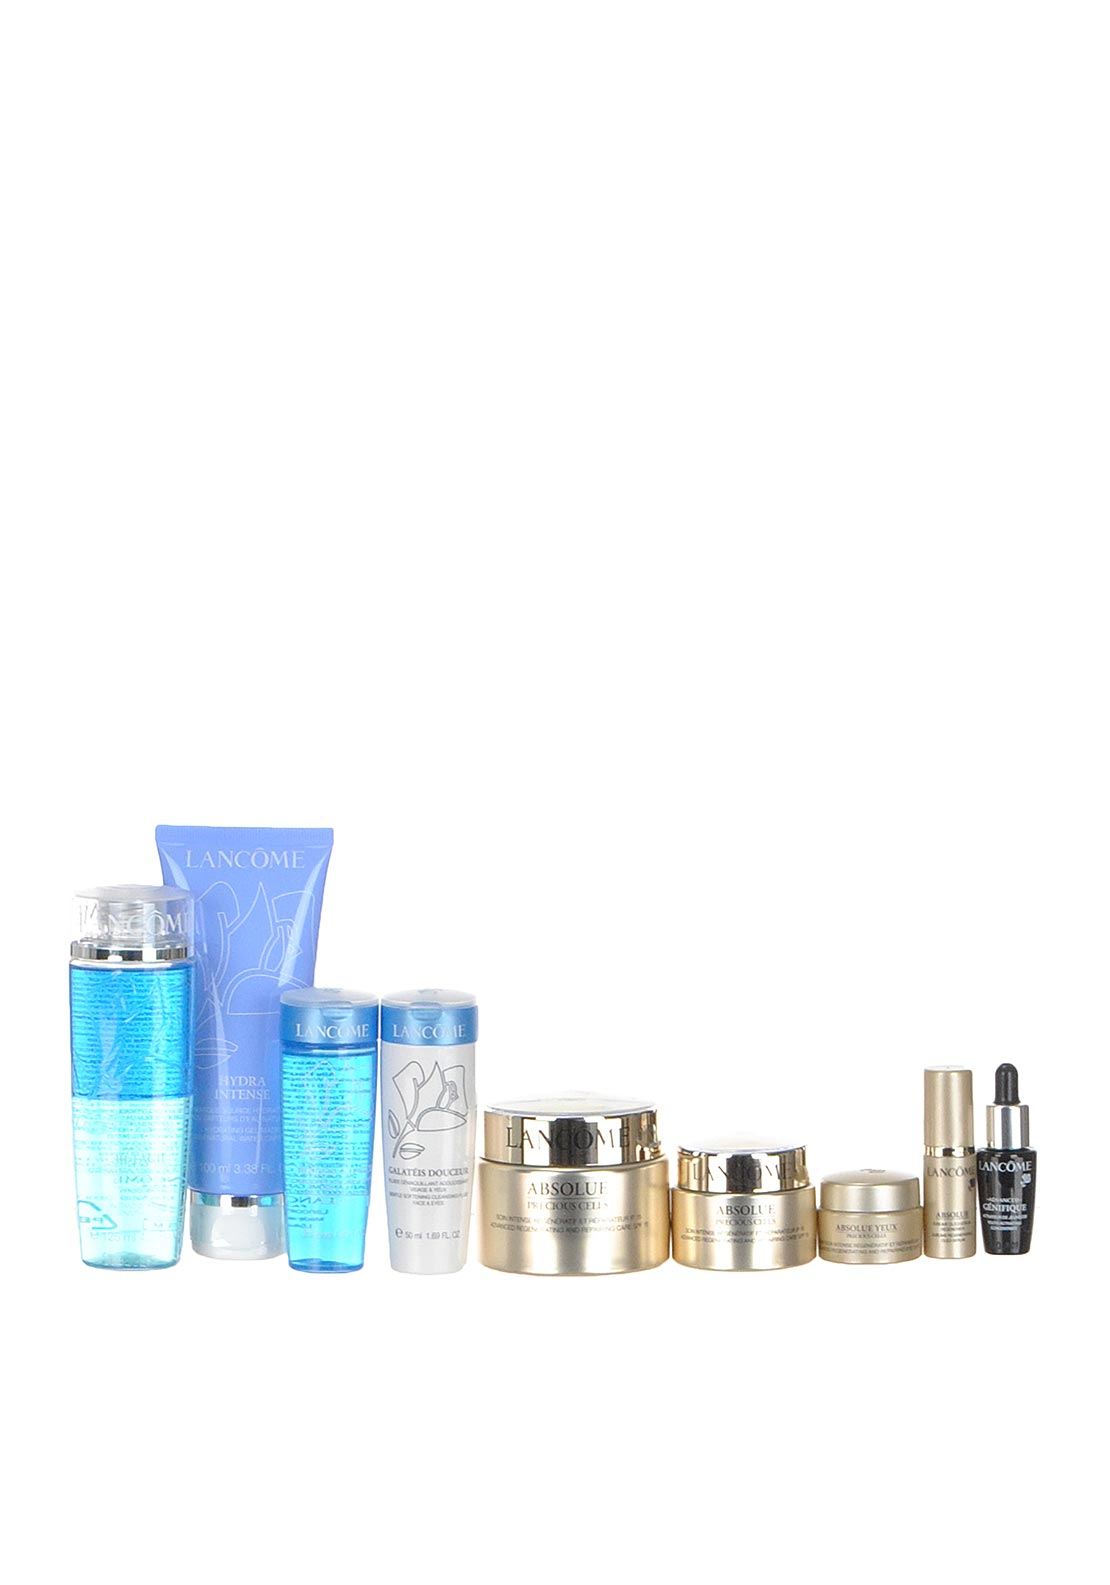 Lancome Absolue Precious Cells Limited Edition Skincare Set